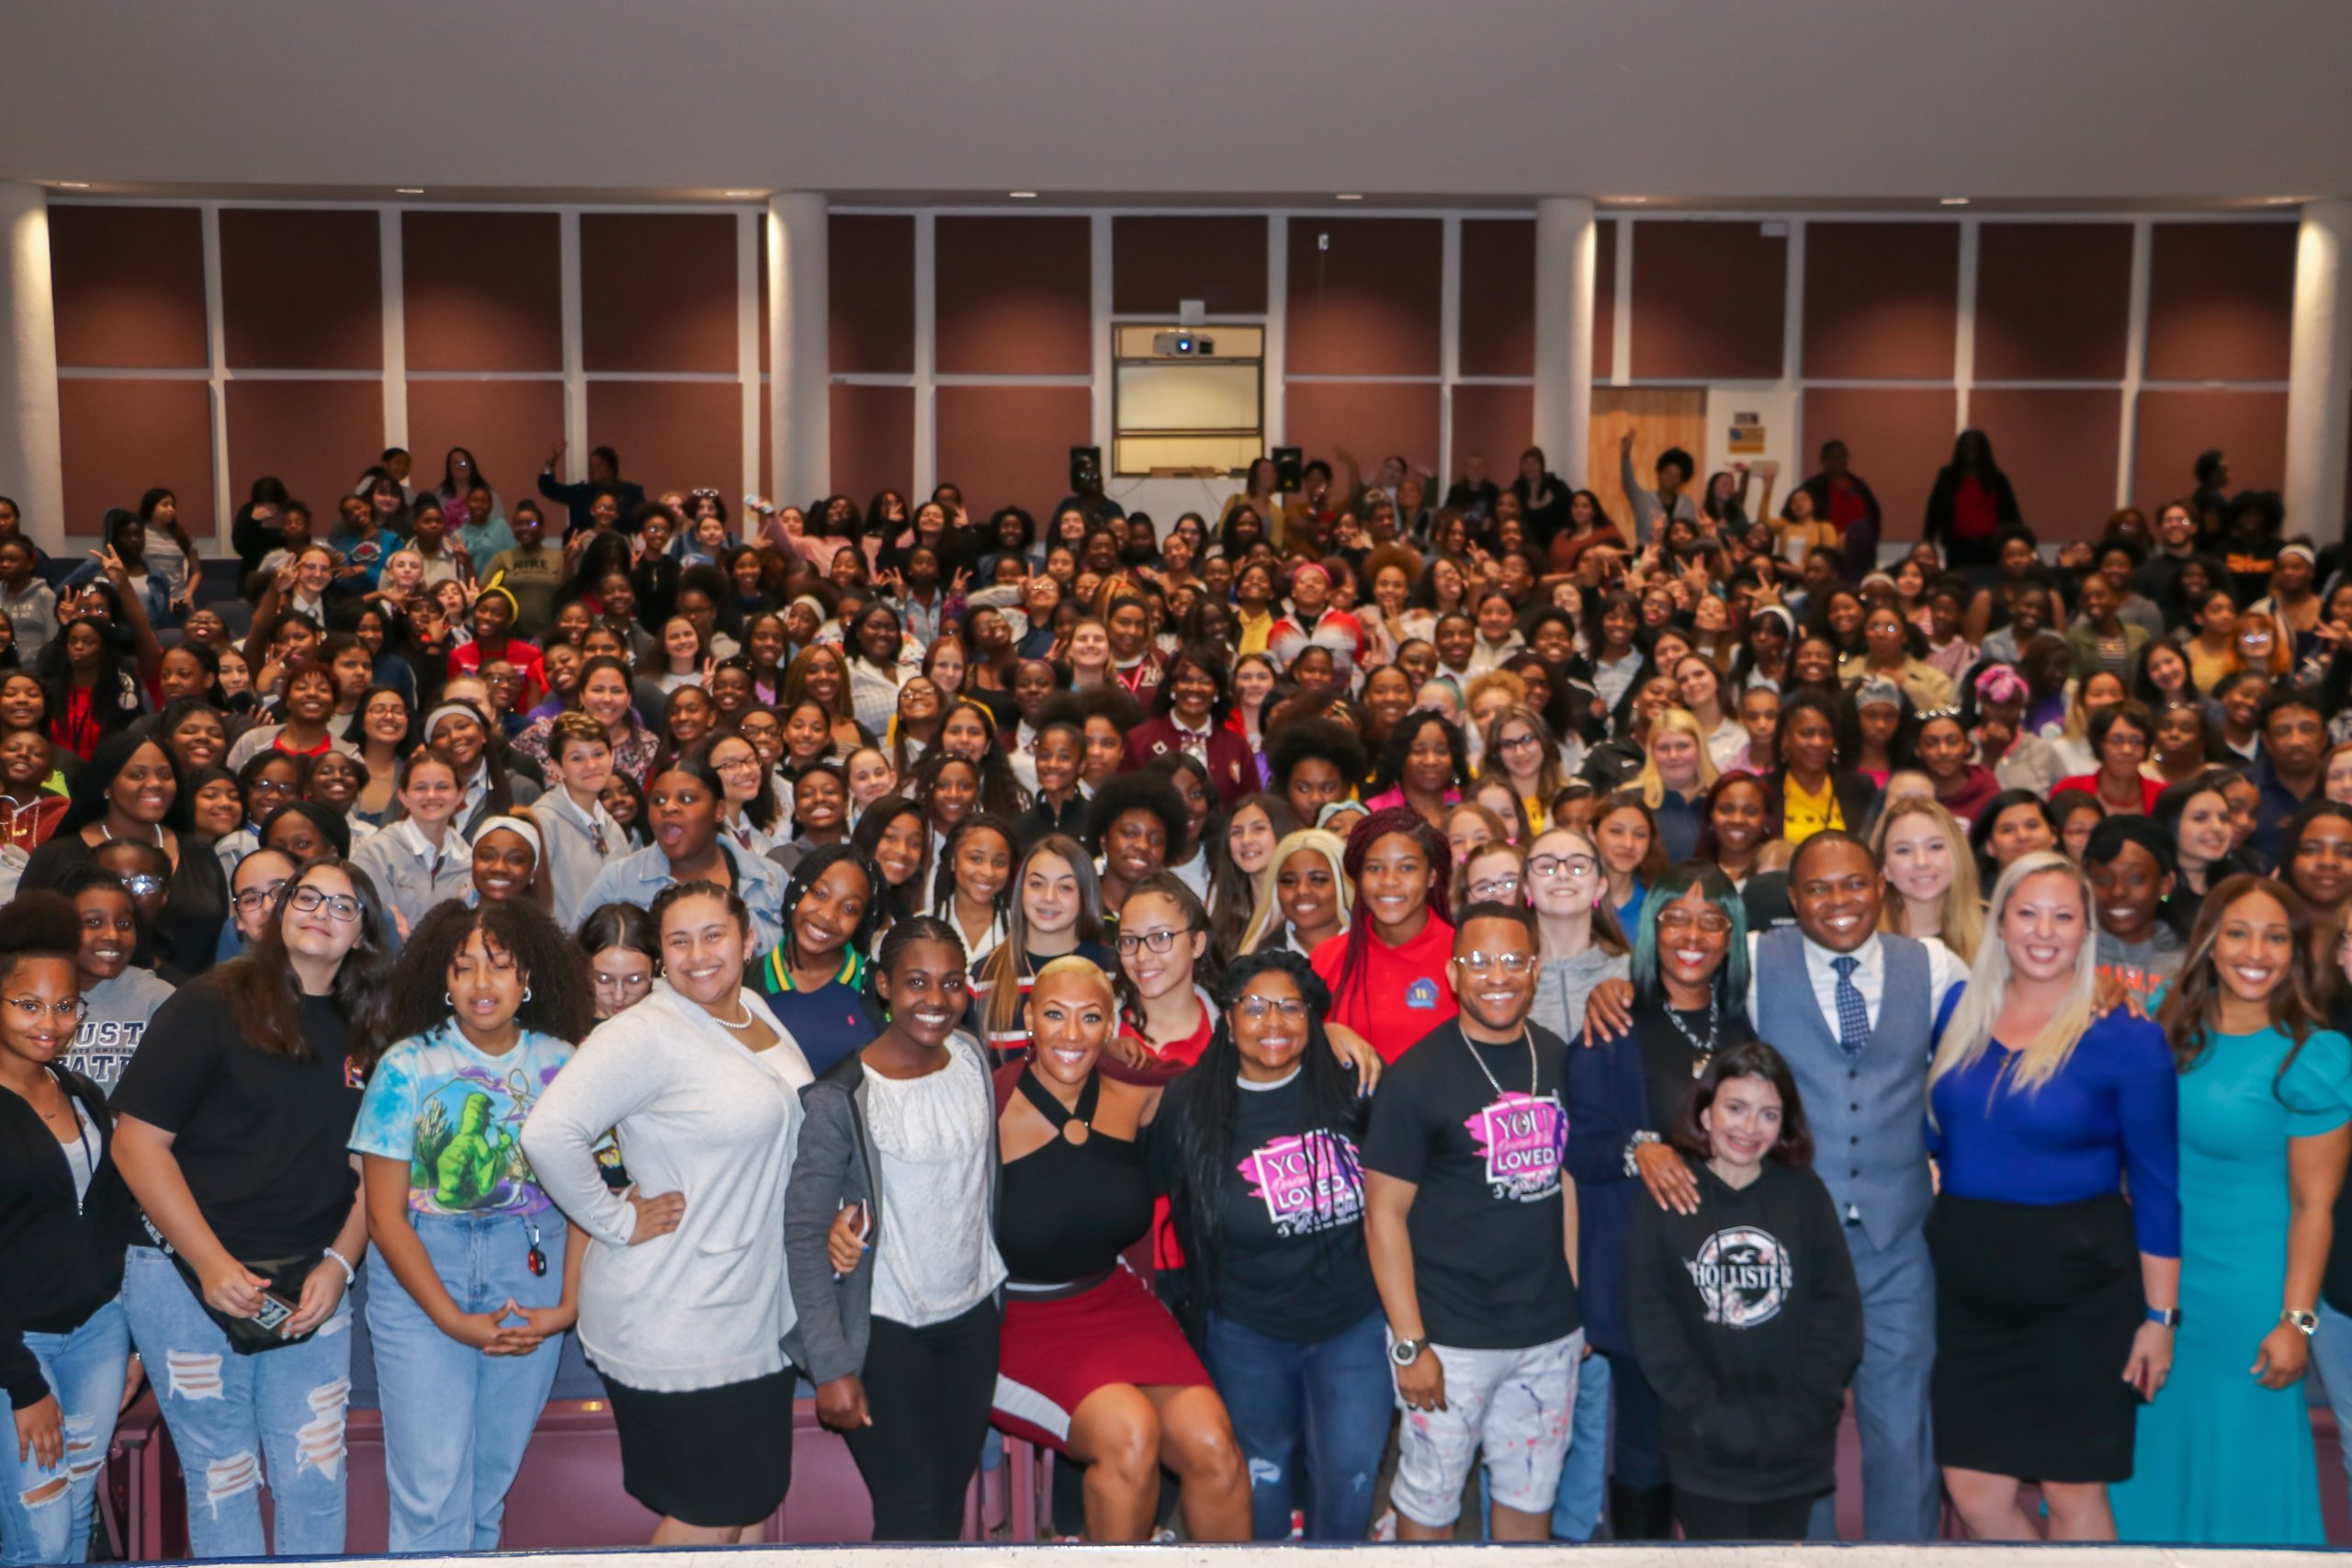 Girls Summit - 700 Attended